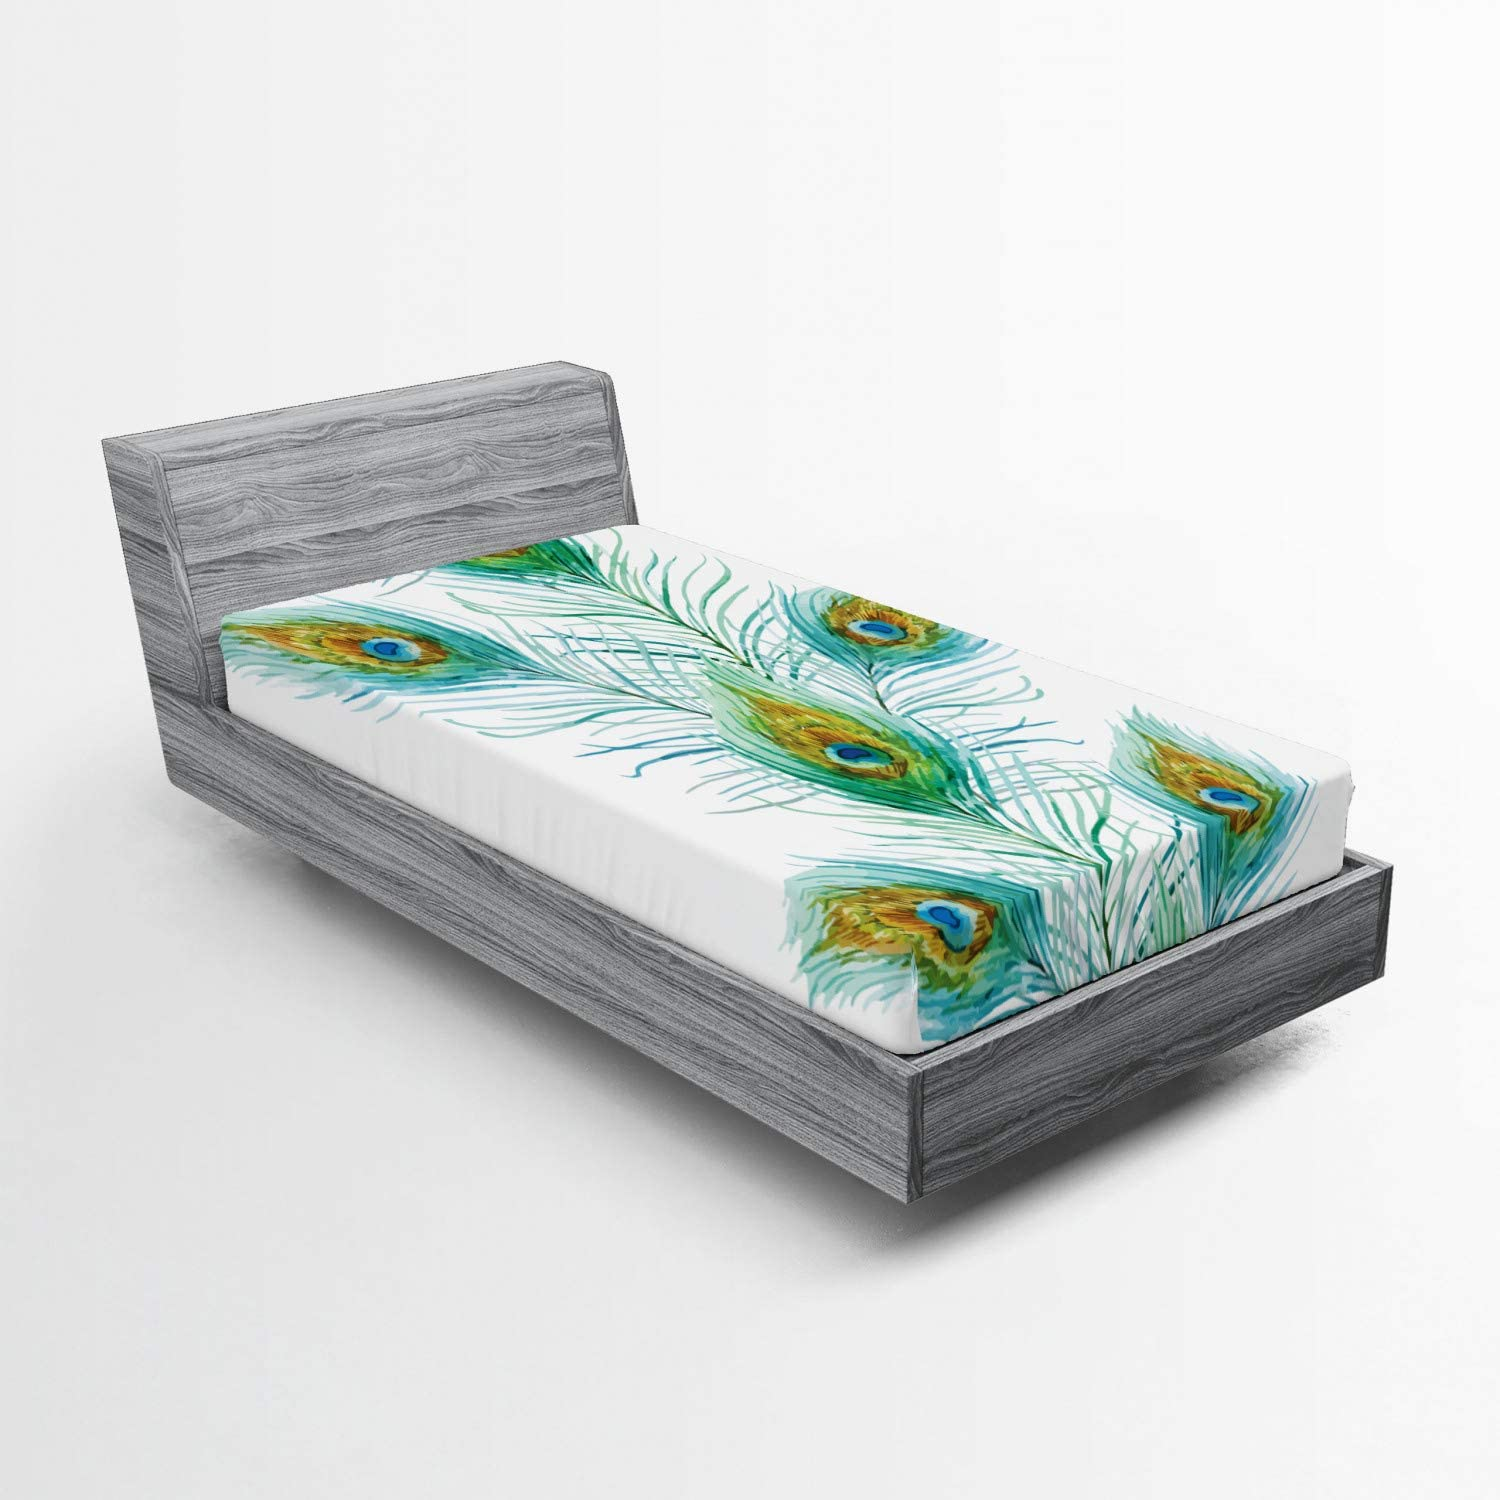 Lunarable Peacock Fitted Sheet Ta Offspring Spotted Luxury goods New products world's highest quality popular Eye